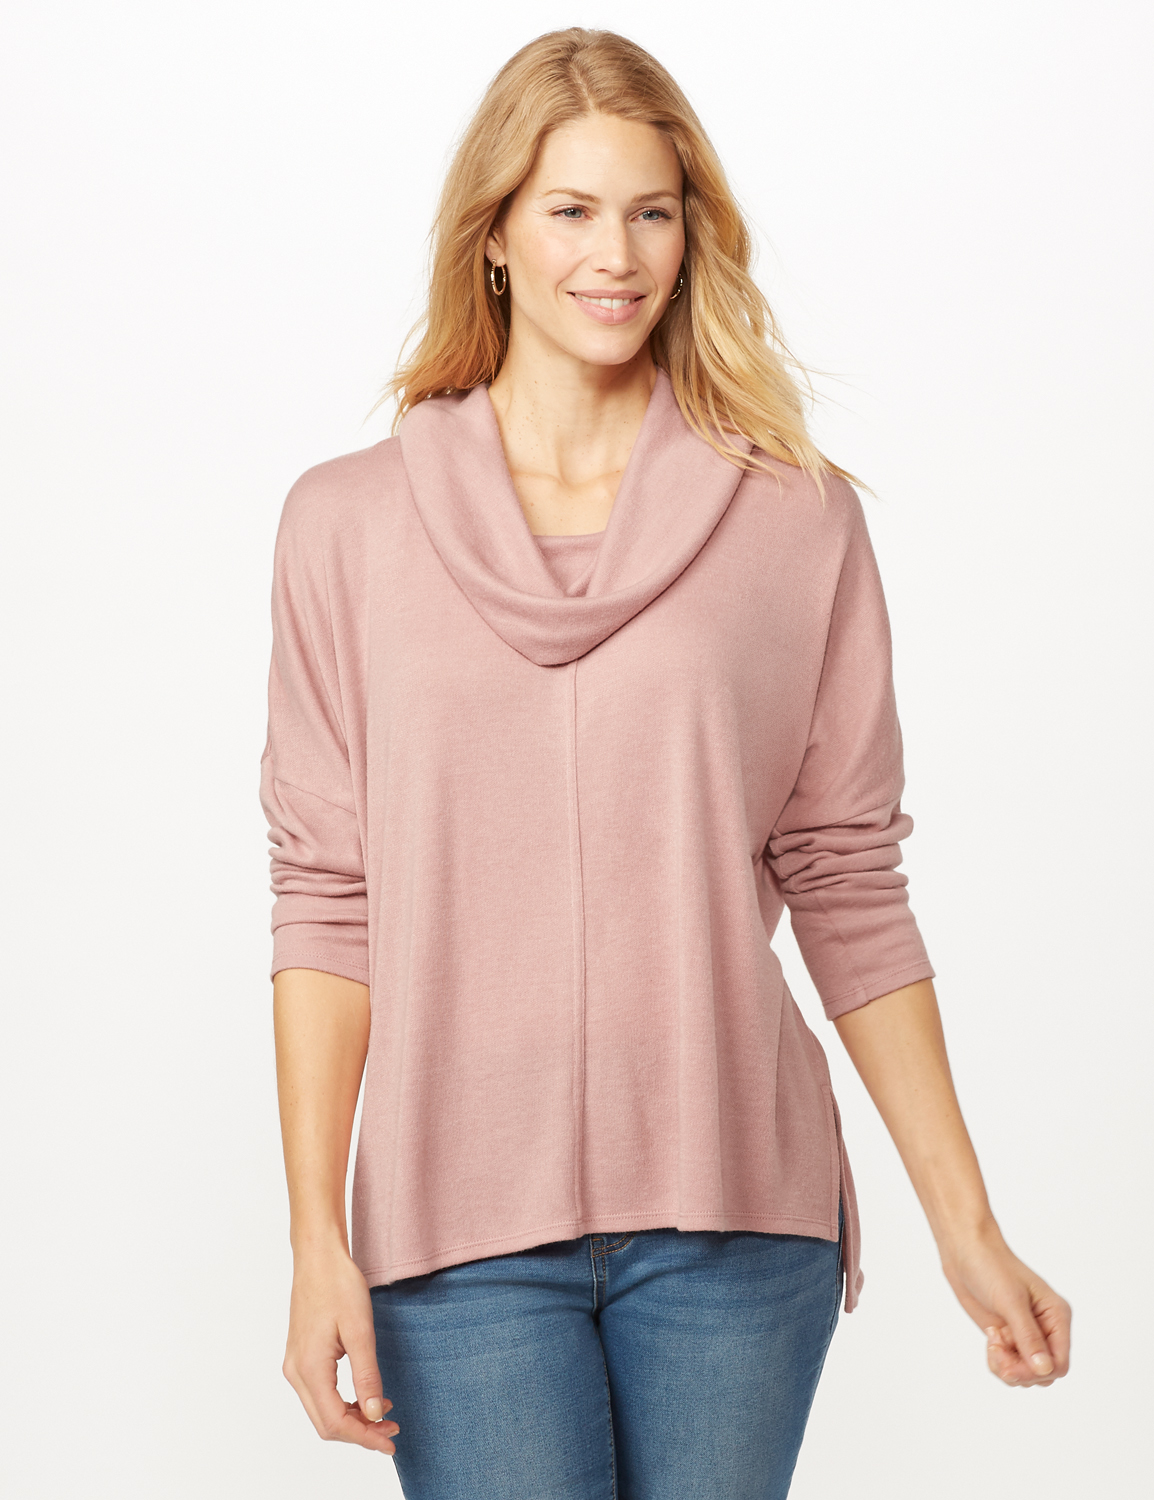 Cowl Neck Hi-Low Knit Top -Dusty Rose - Front